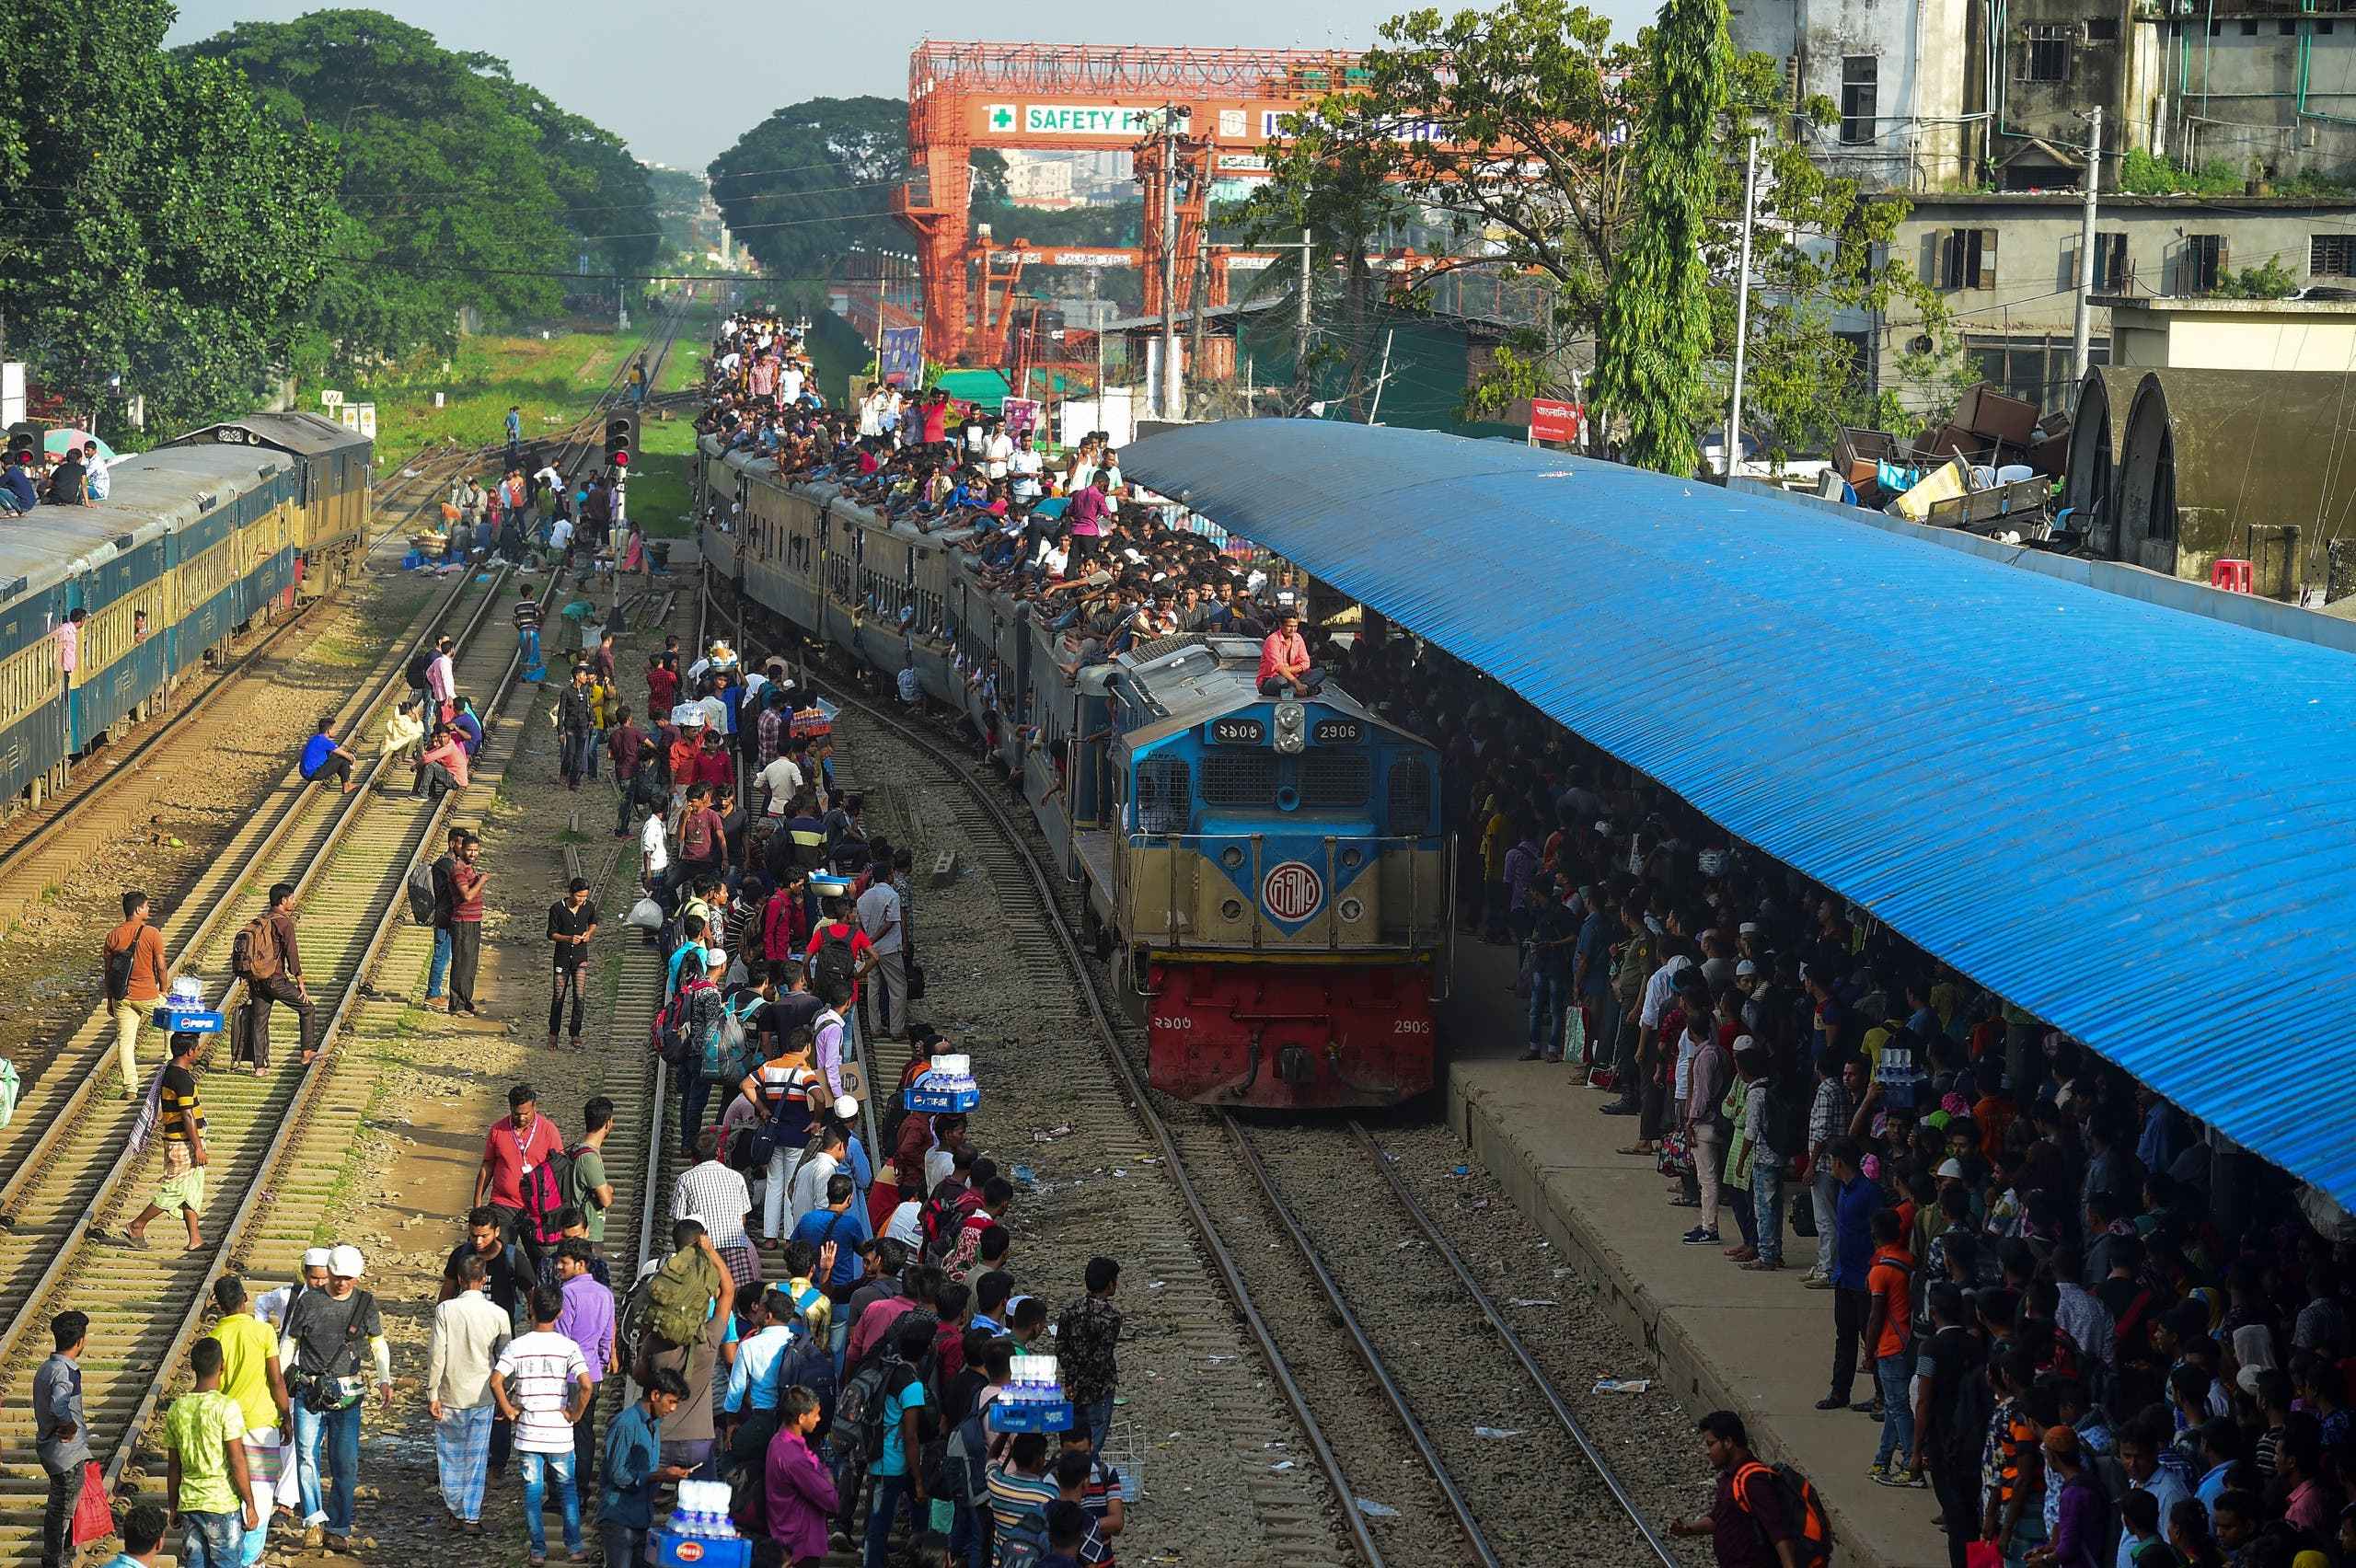 People cram onto a train to travel back home in Dhaka on August 9, 2019. (AFP)